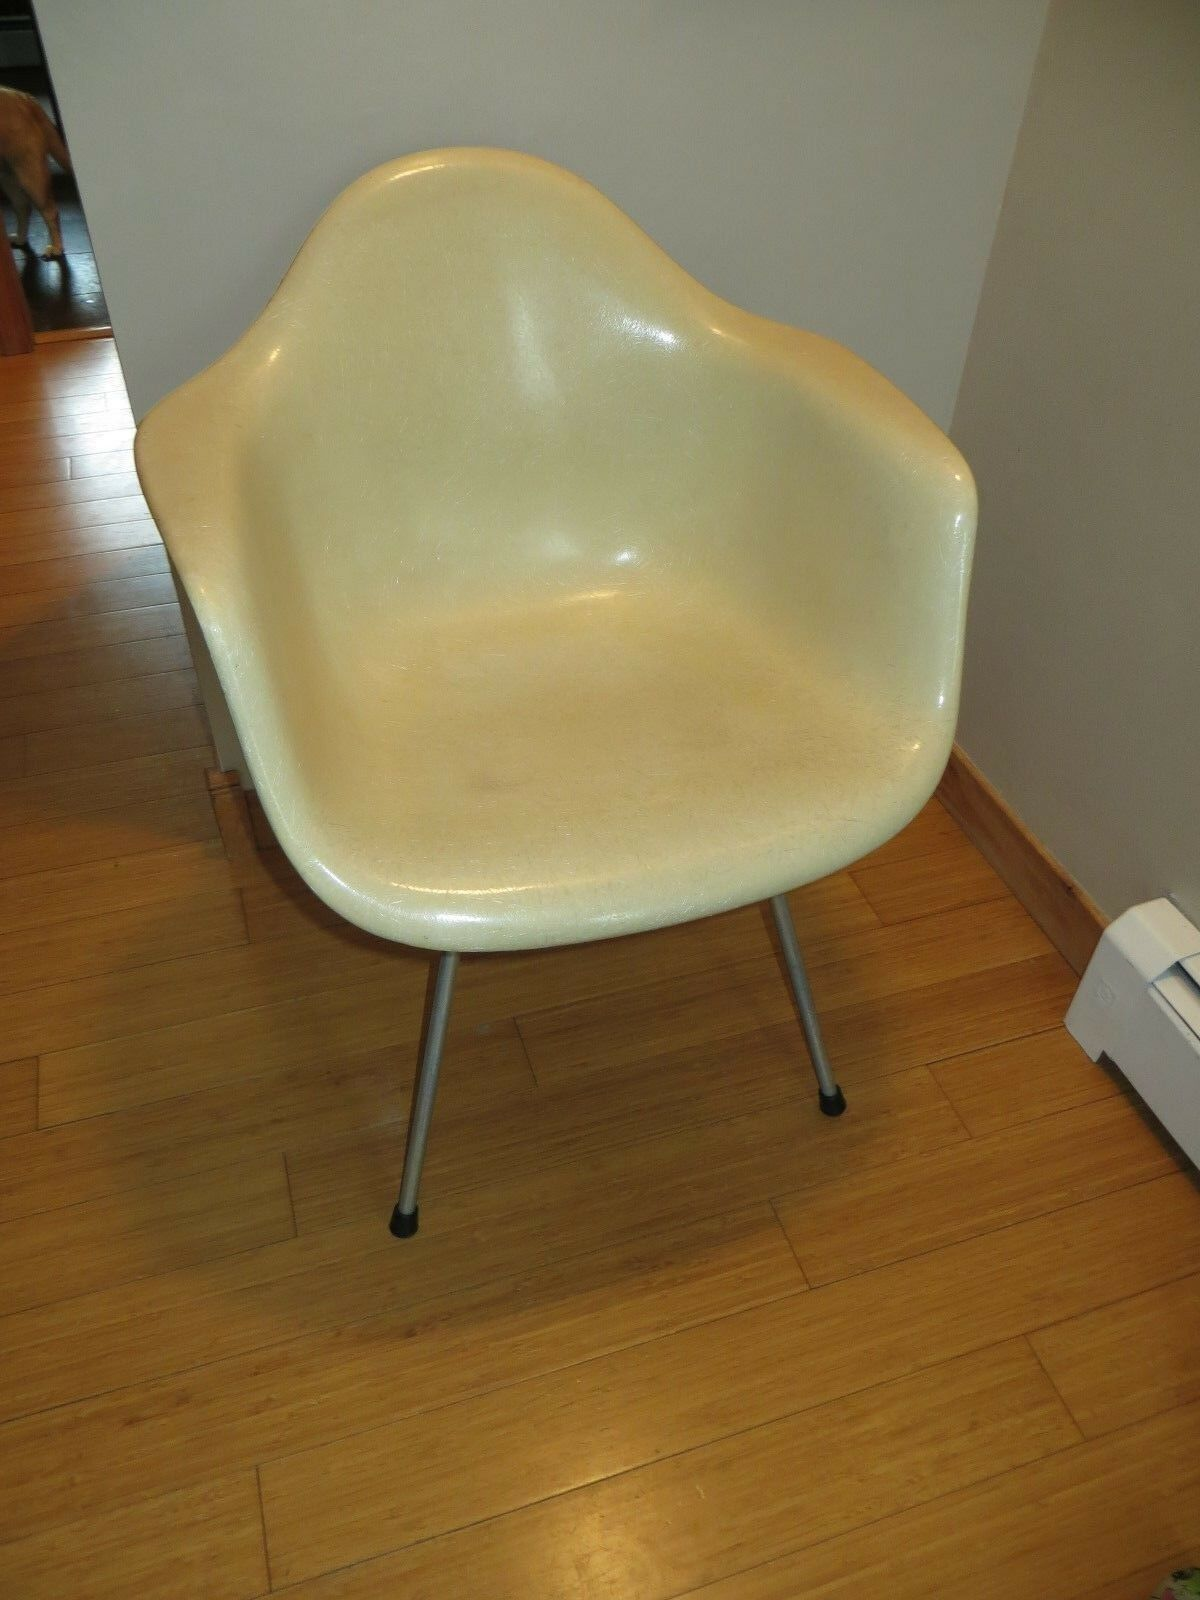 Charmant Vintage Mid Century Herman Miller Fiberglass Arm Chair Beige Shell Base  Retro 1 Of 12 ...